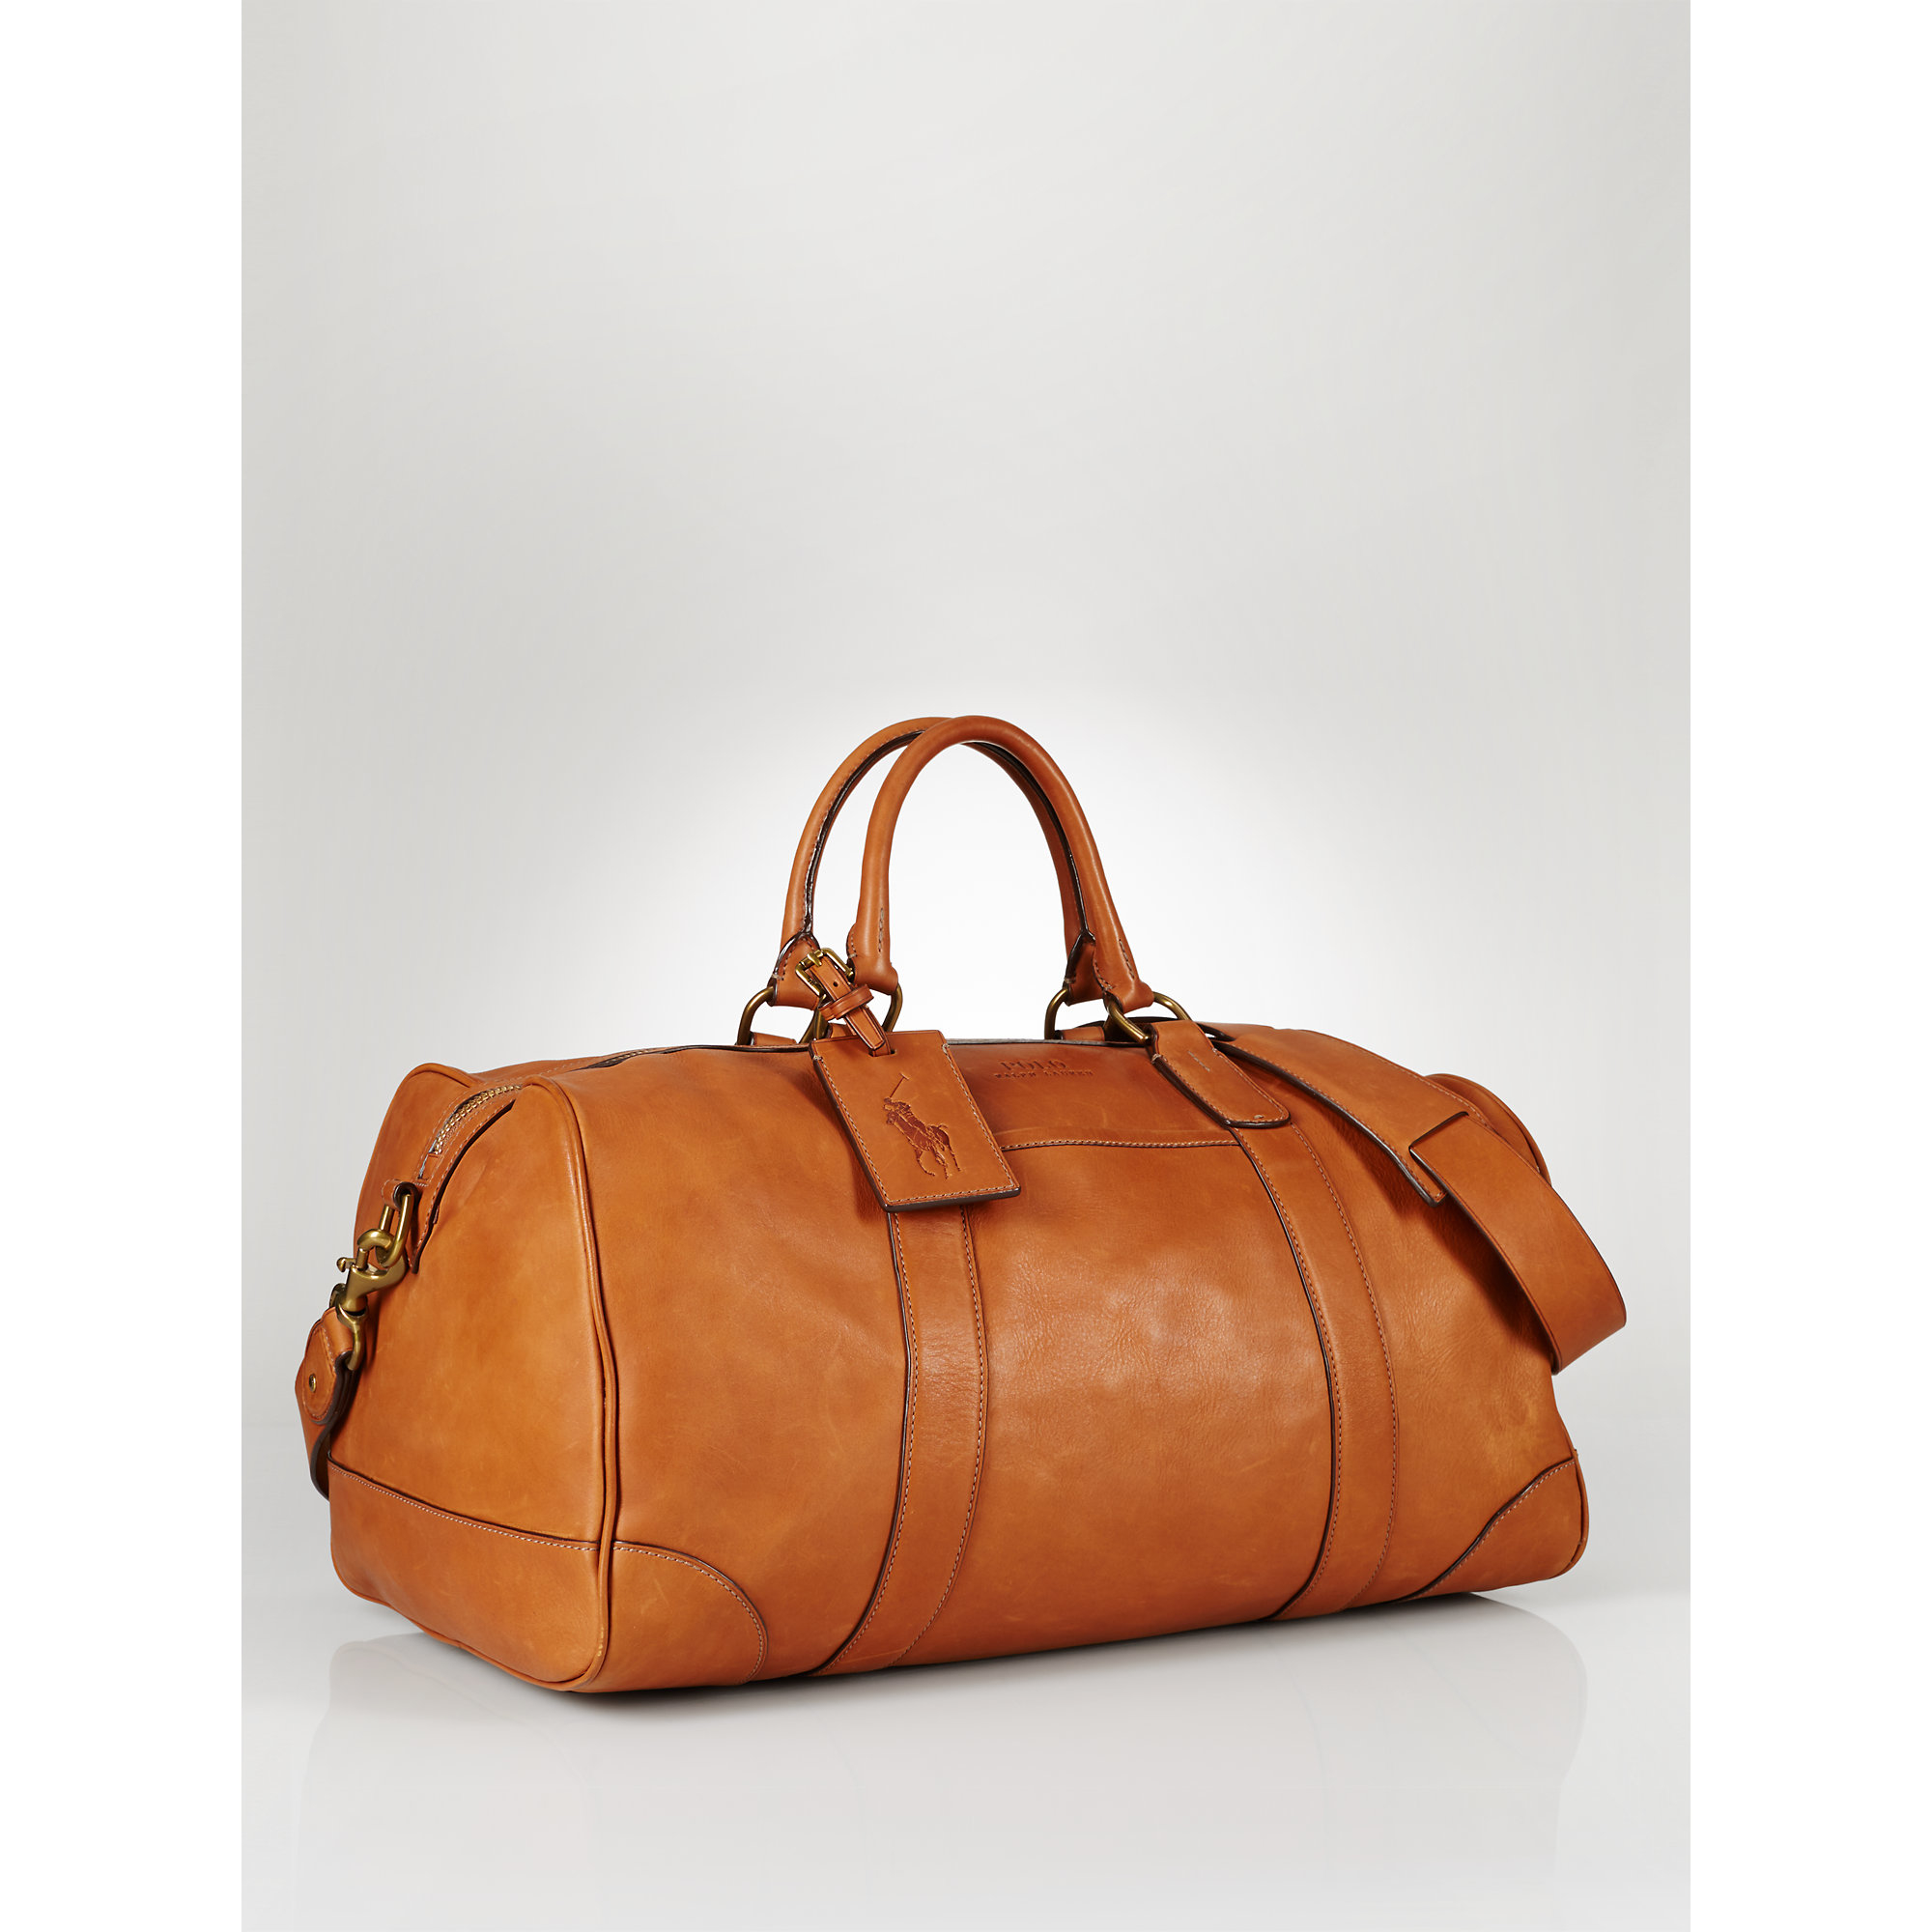 ... usa lyst polo ralph lauren leather duffel bag in brown for men f5023  50726 ... 7ac495d1e5068